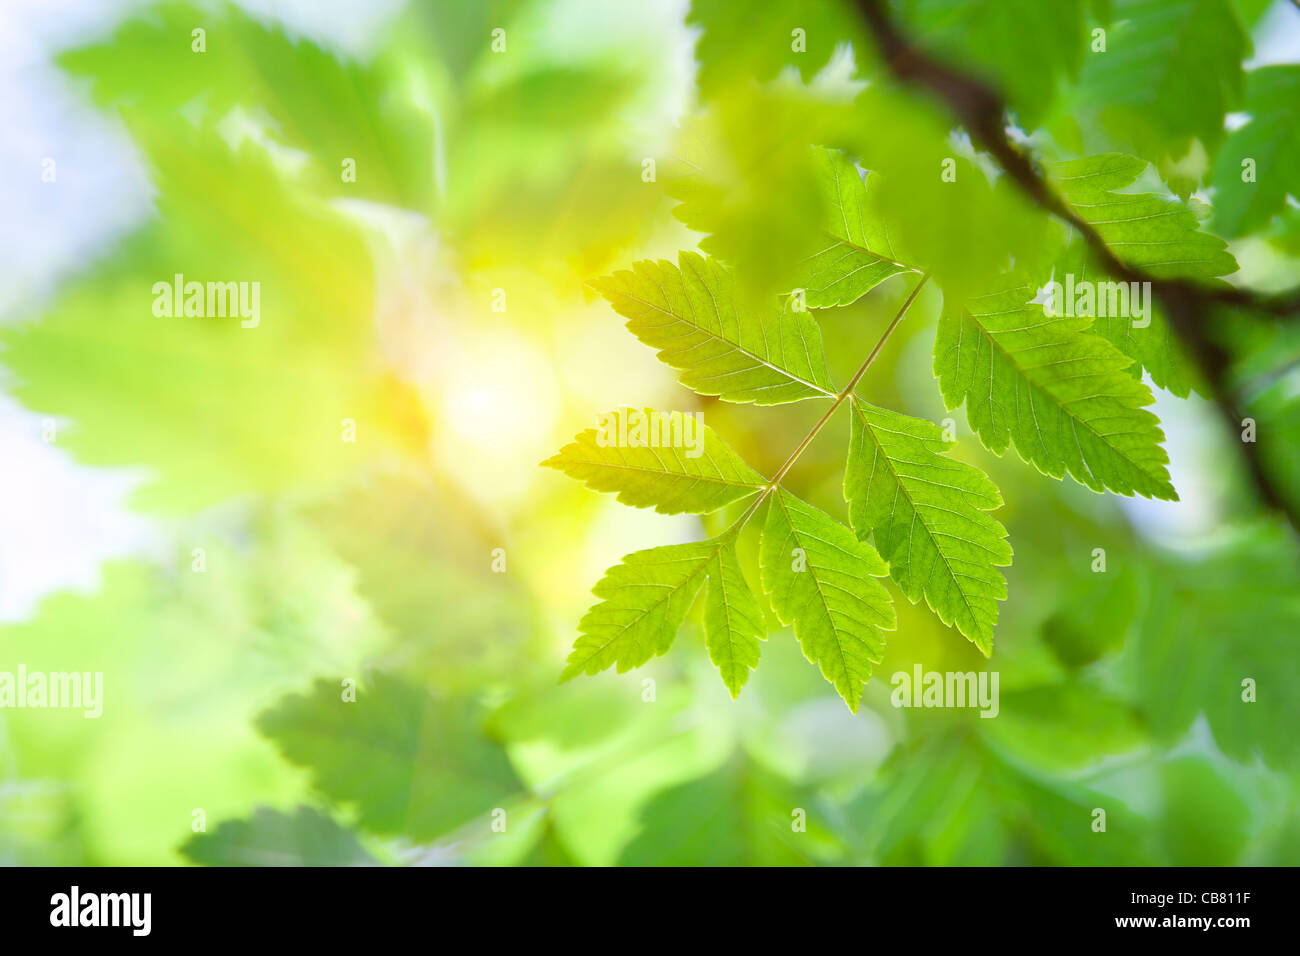 Sunlight through the Leaves - Stock Image